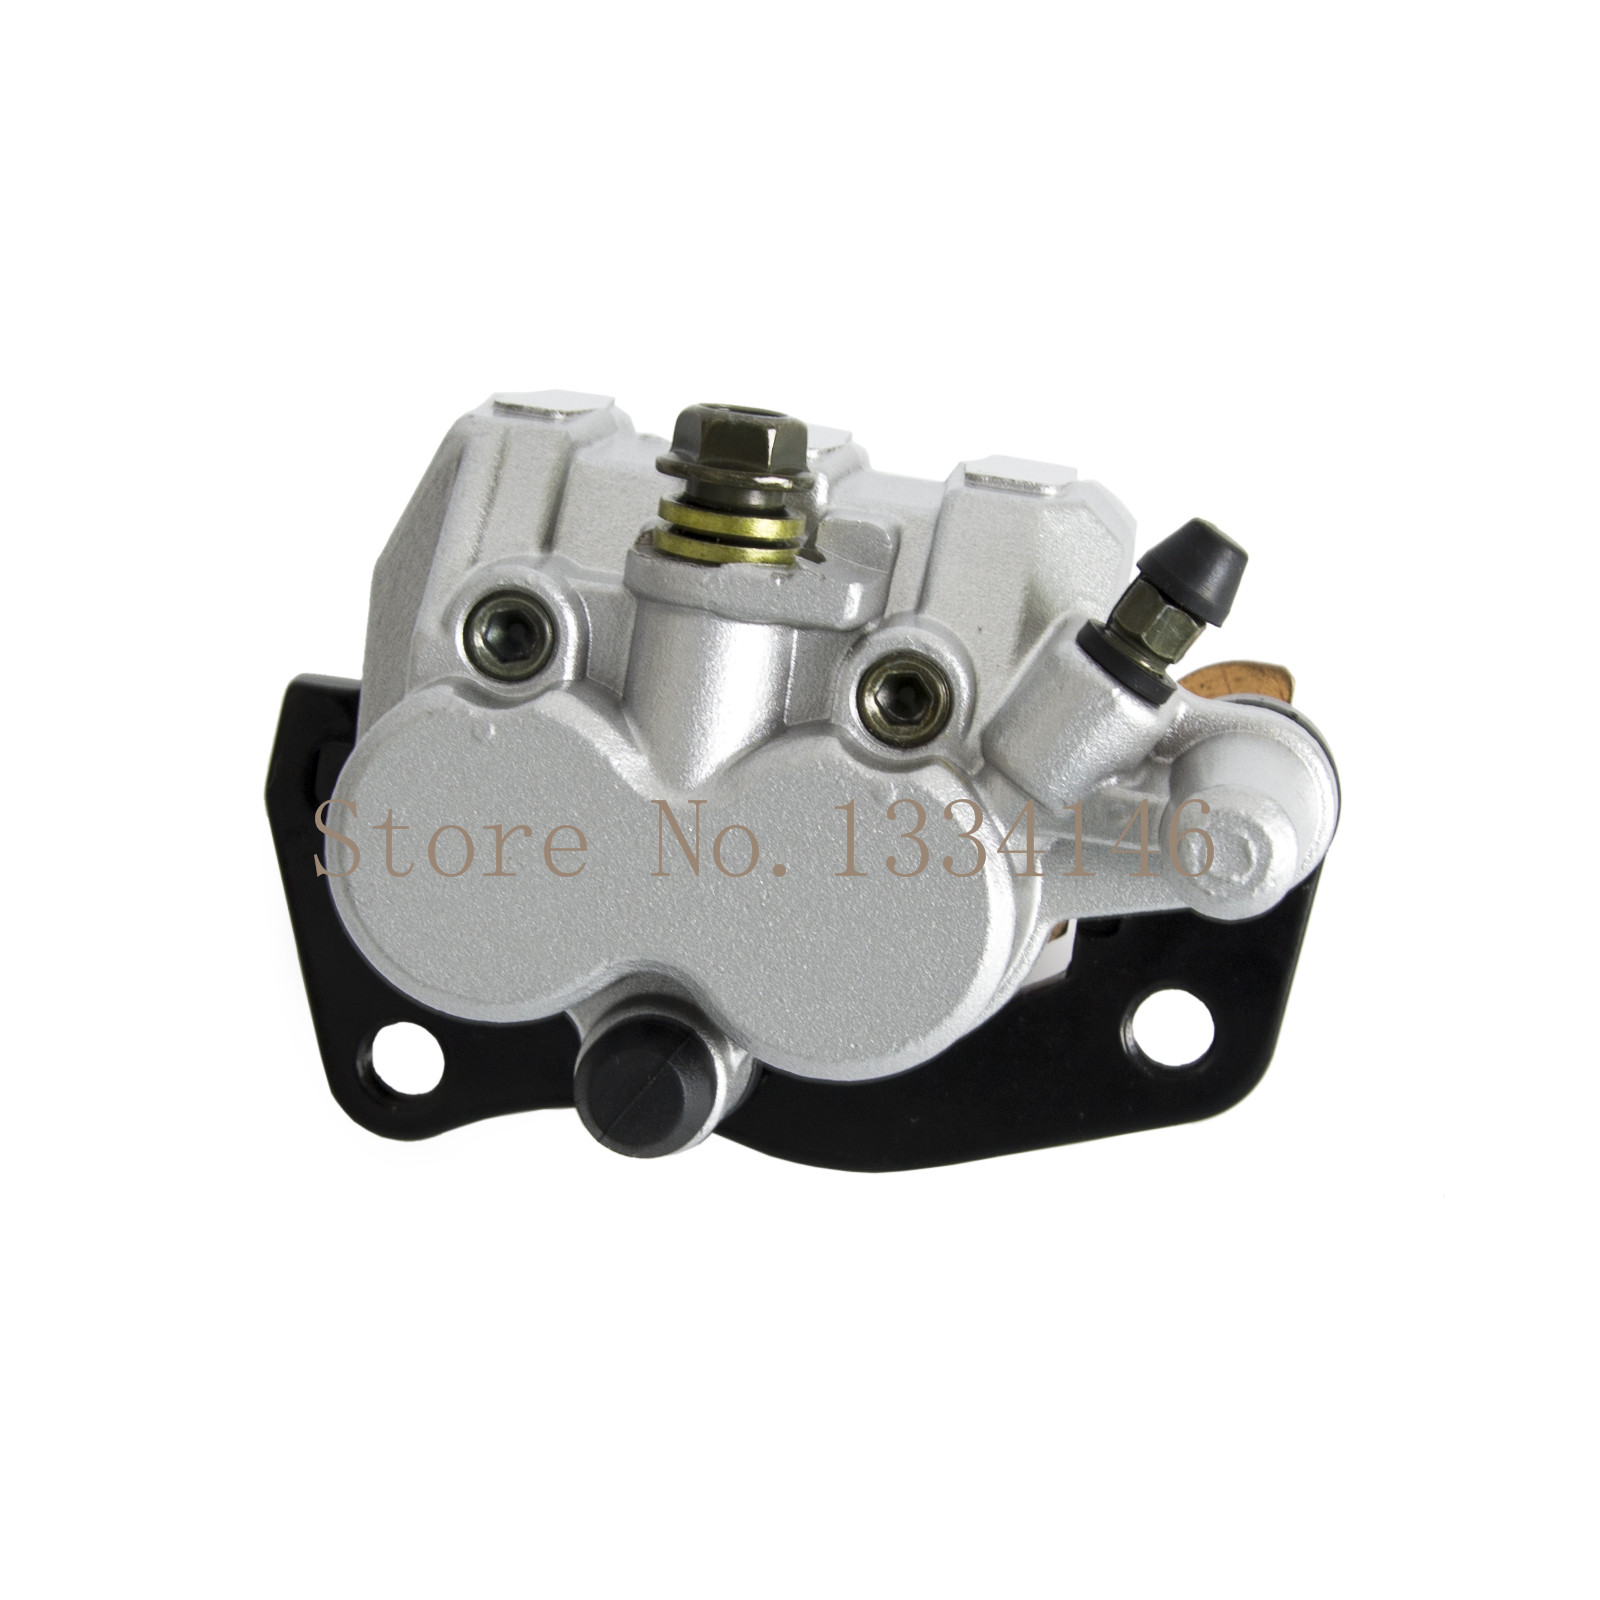 ФОТО Front Left Brake Caliper With Pads New Fits For Suzuki Burgman AN400 2007 2008 2009 2010 2011